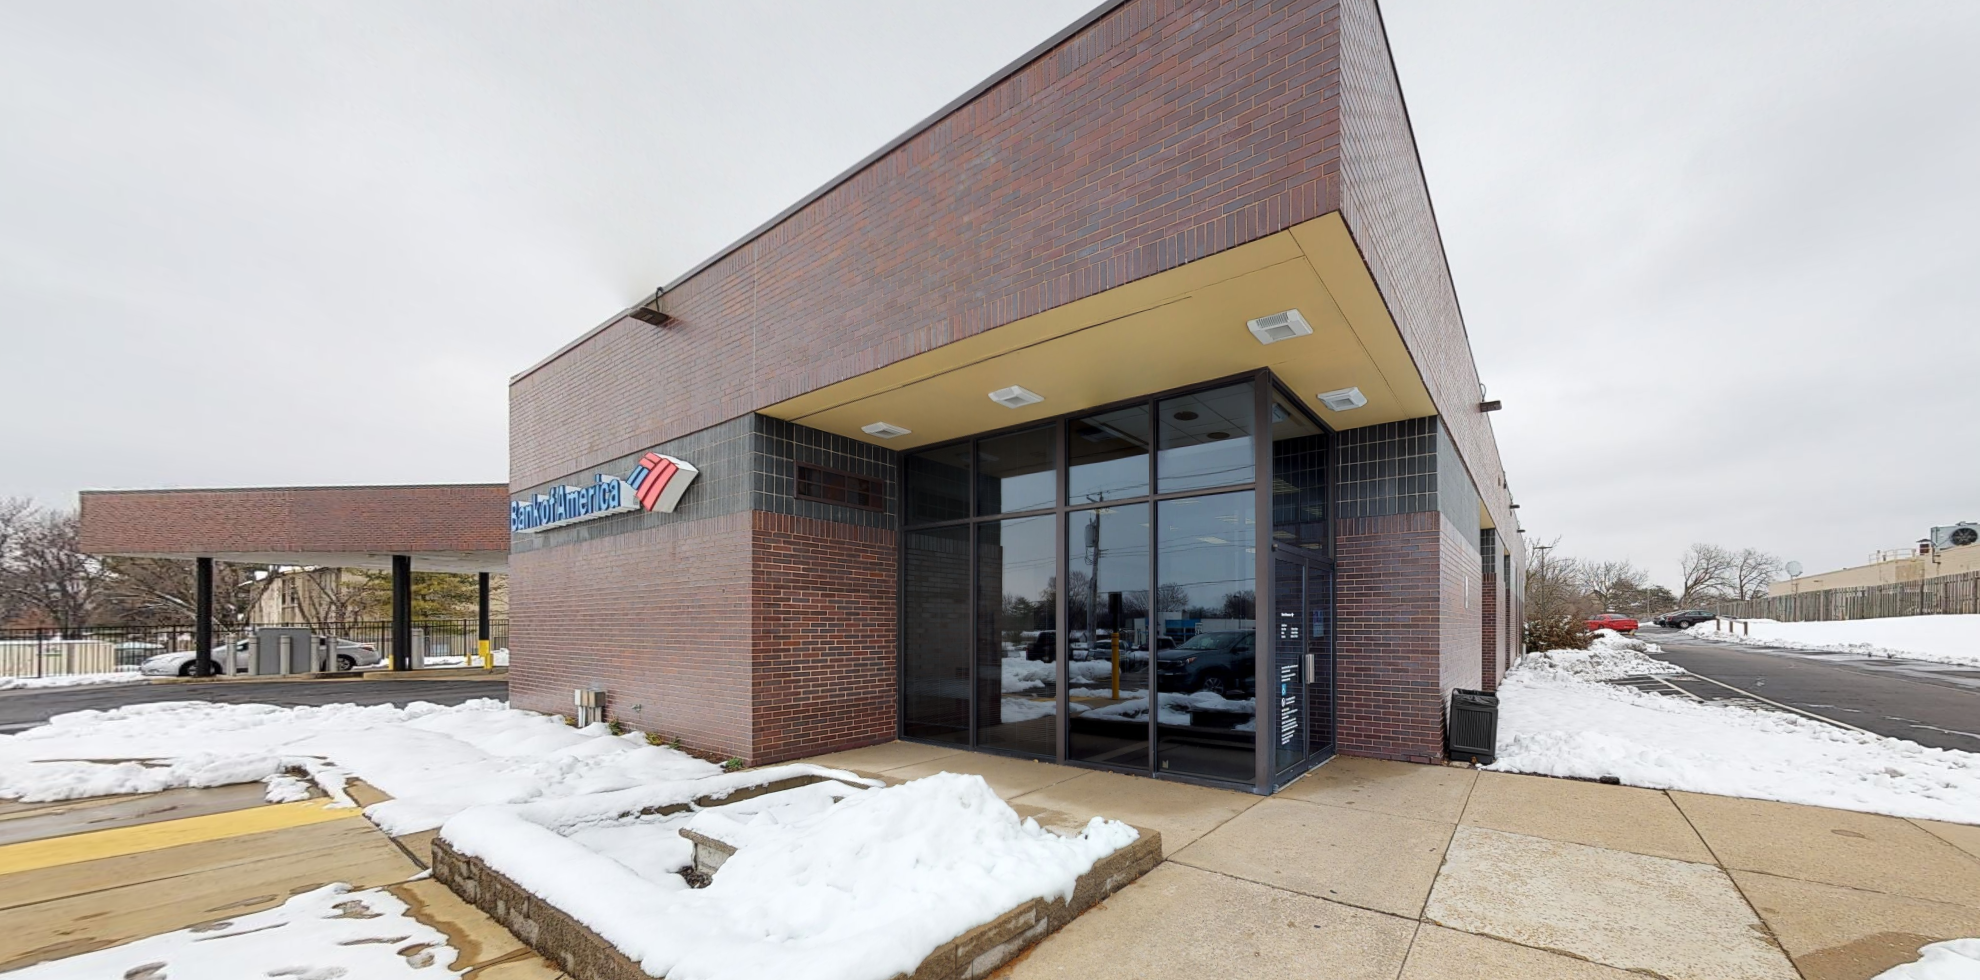 Bank of America financial center with drive-thru ATM and teller   14300 New Halls Ferry Rd, Florissant, MO 63033